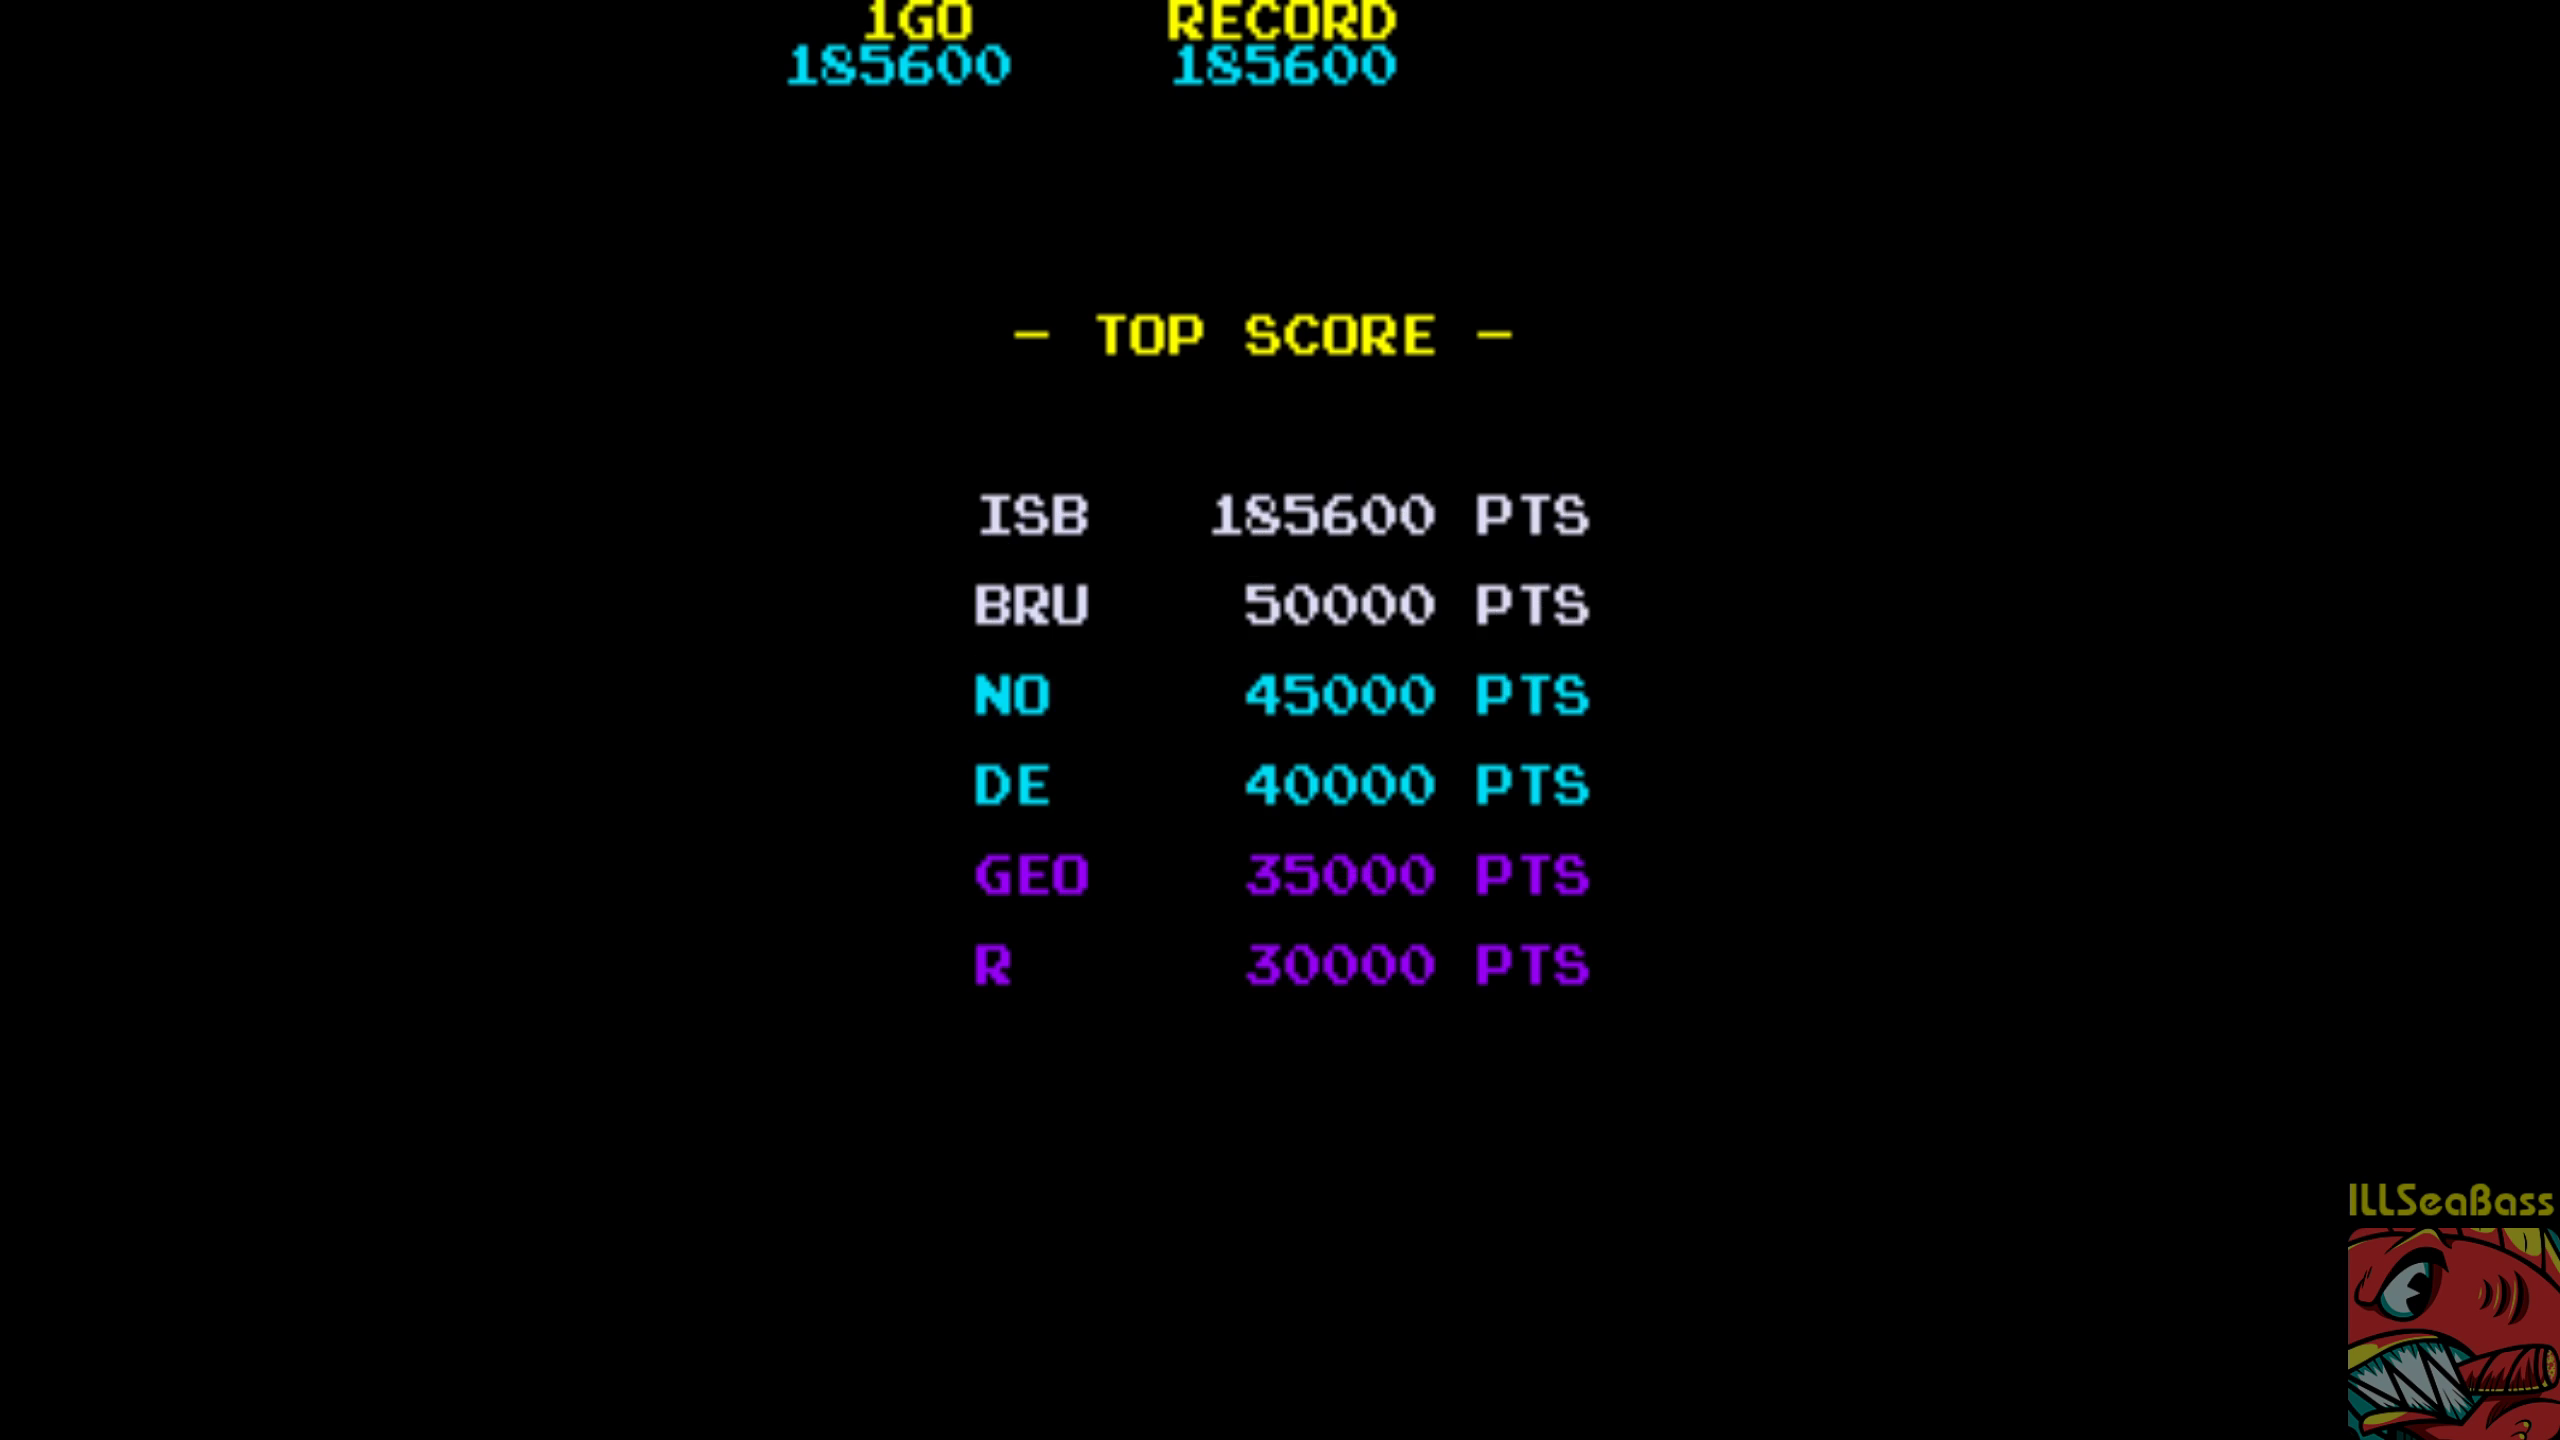 ILLSeaBass: Hot Shocker [hotshock] (Arcade Emulated / M.A.M.E.) 185,600 points on 2018-08-05 14:23:19